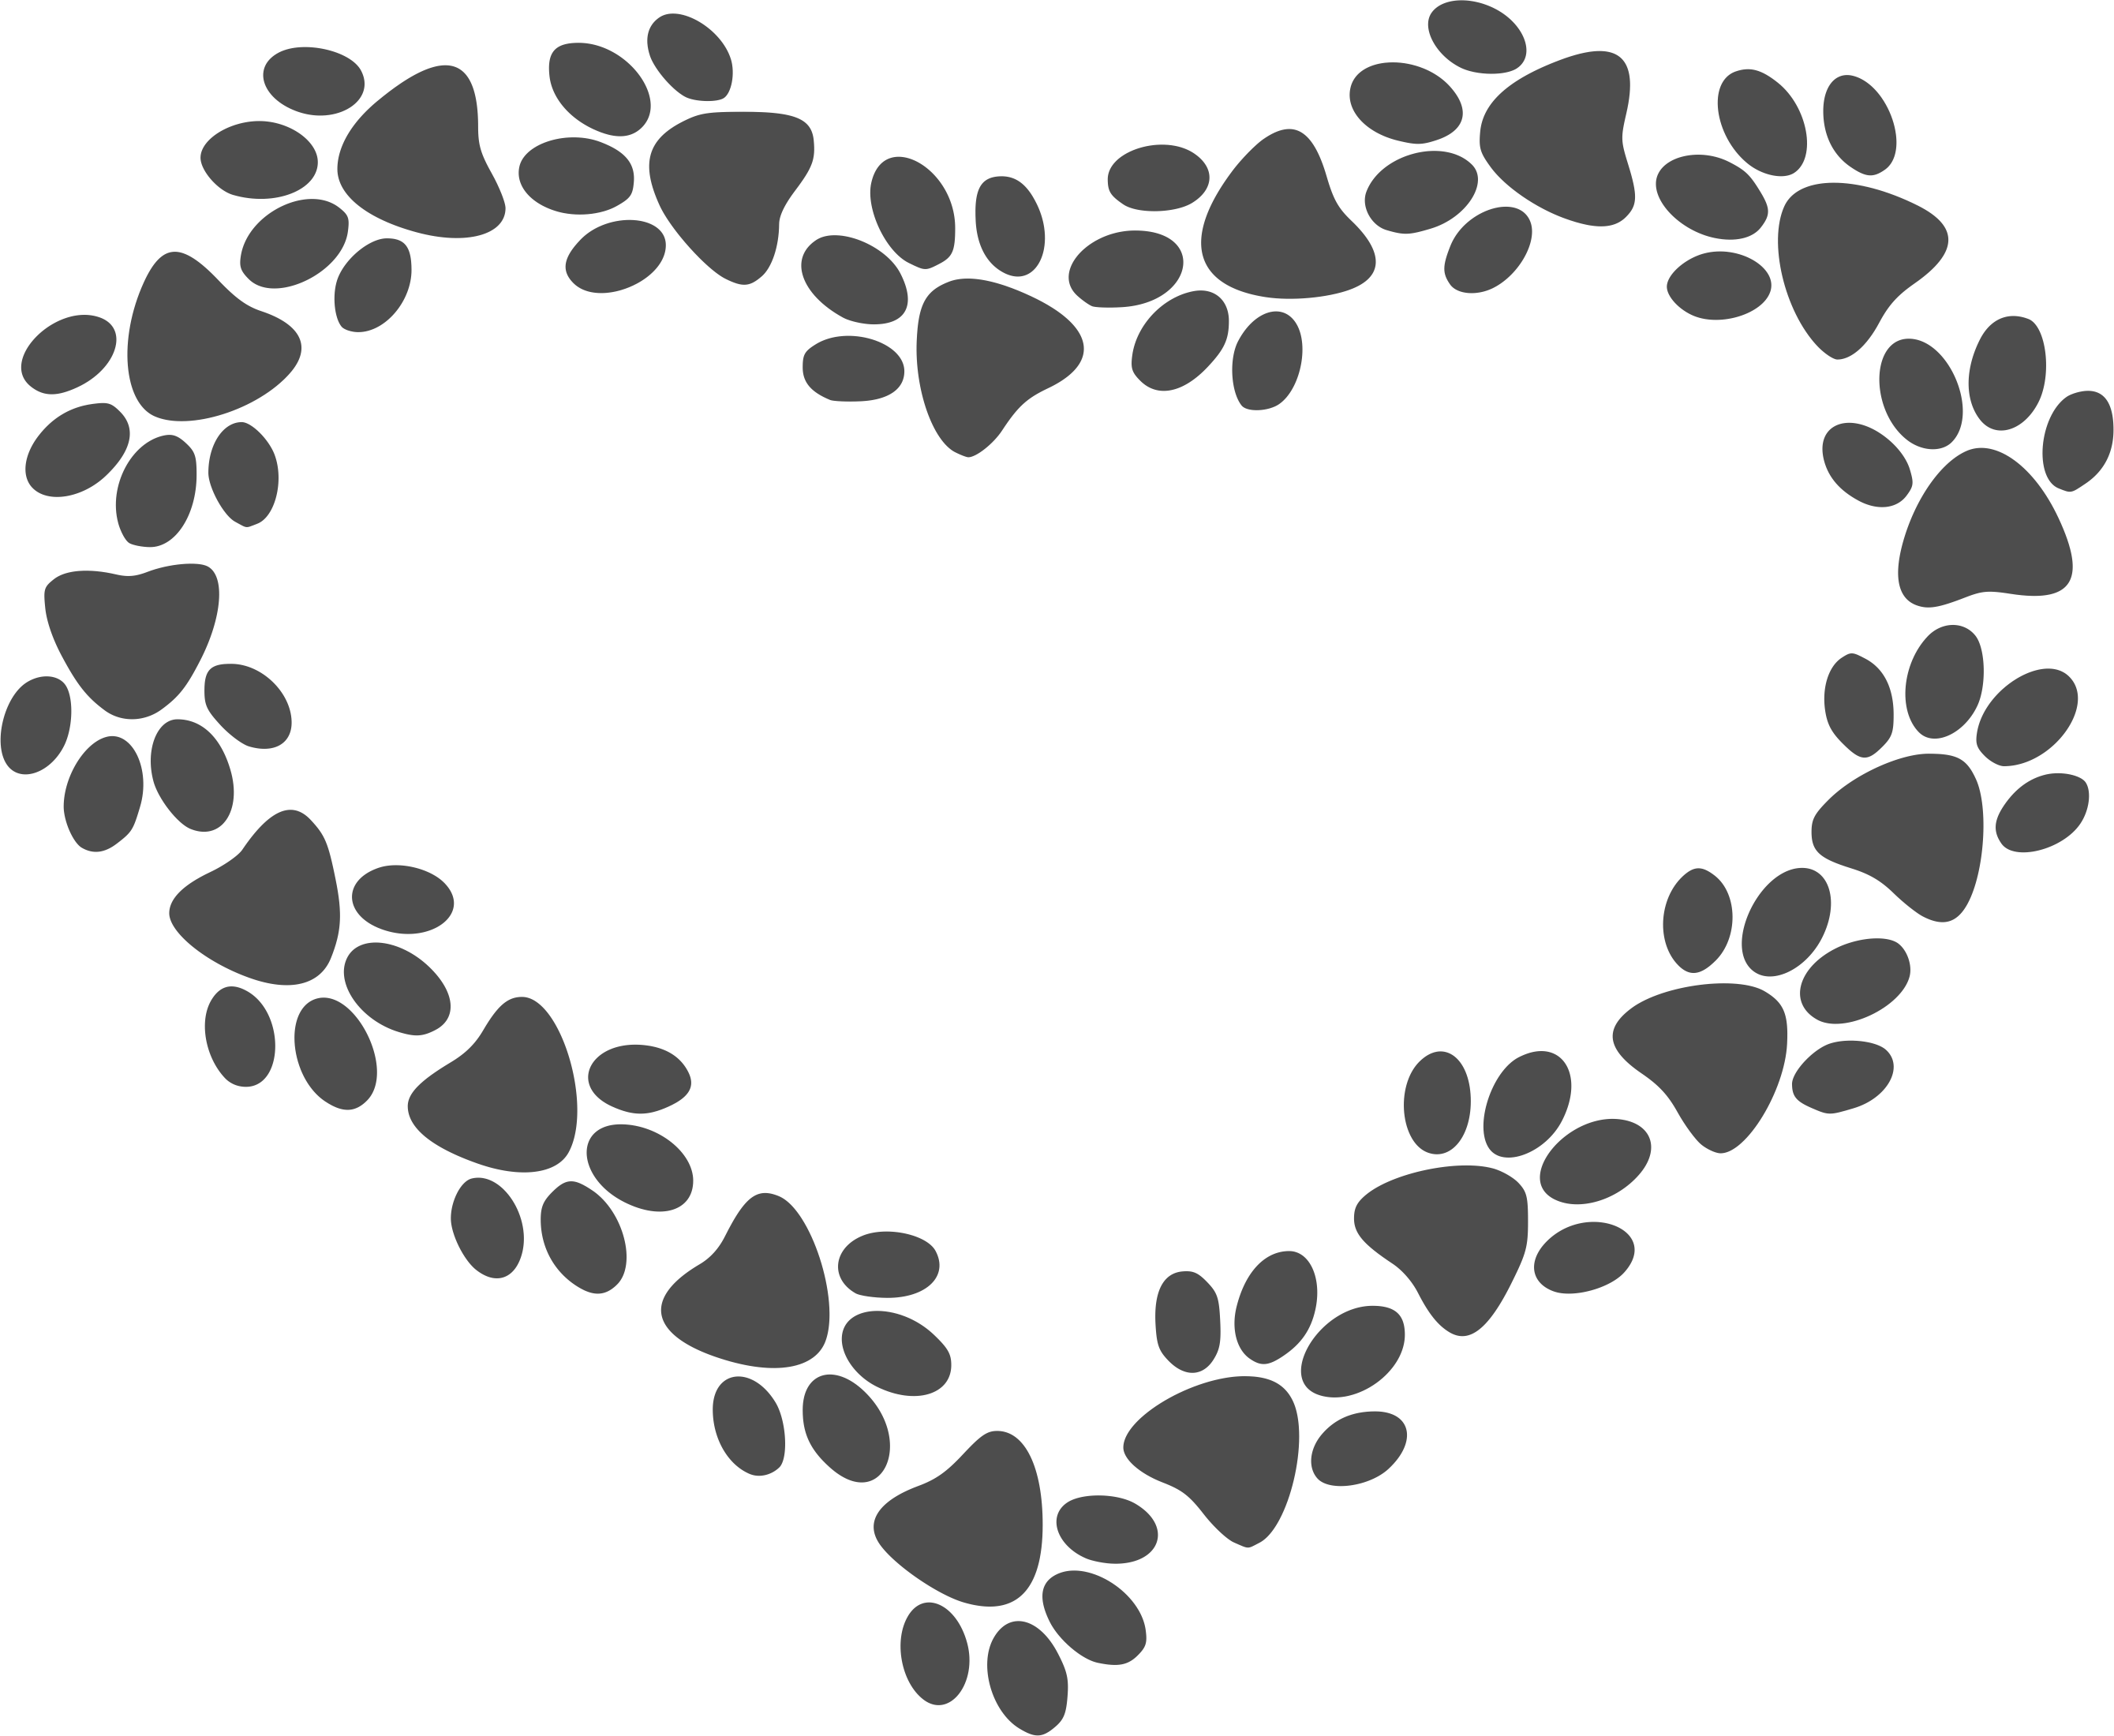 Heartbeat clipart basketball. Paw print heart decal